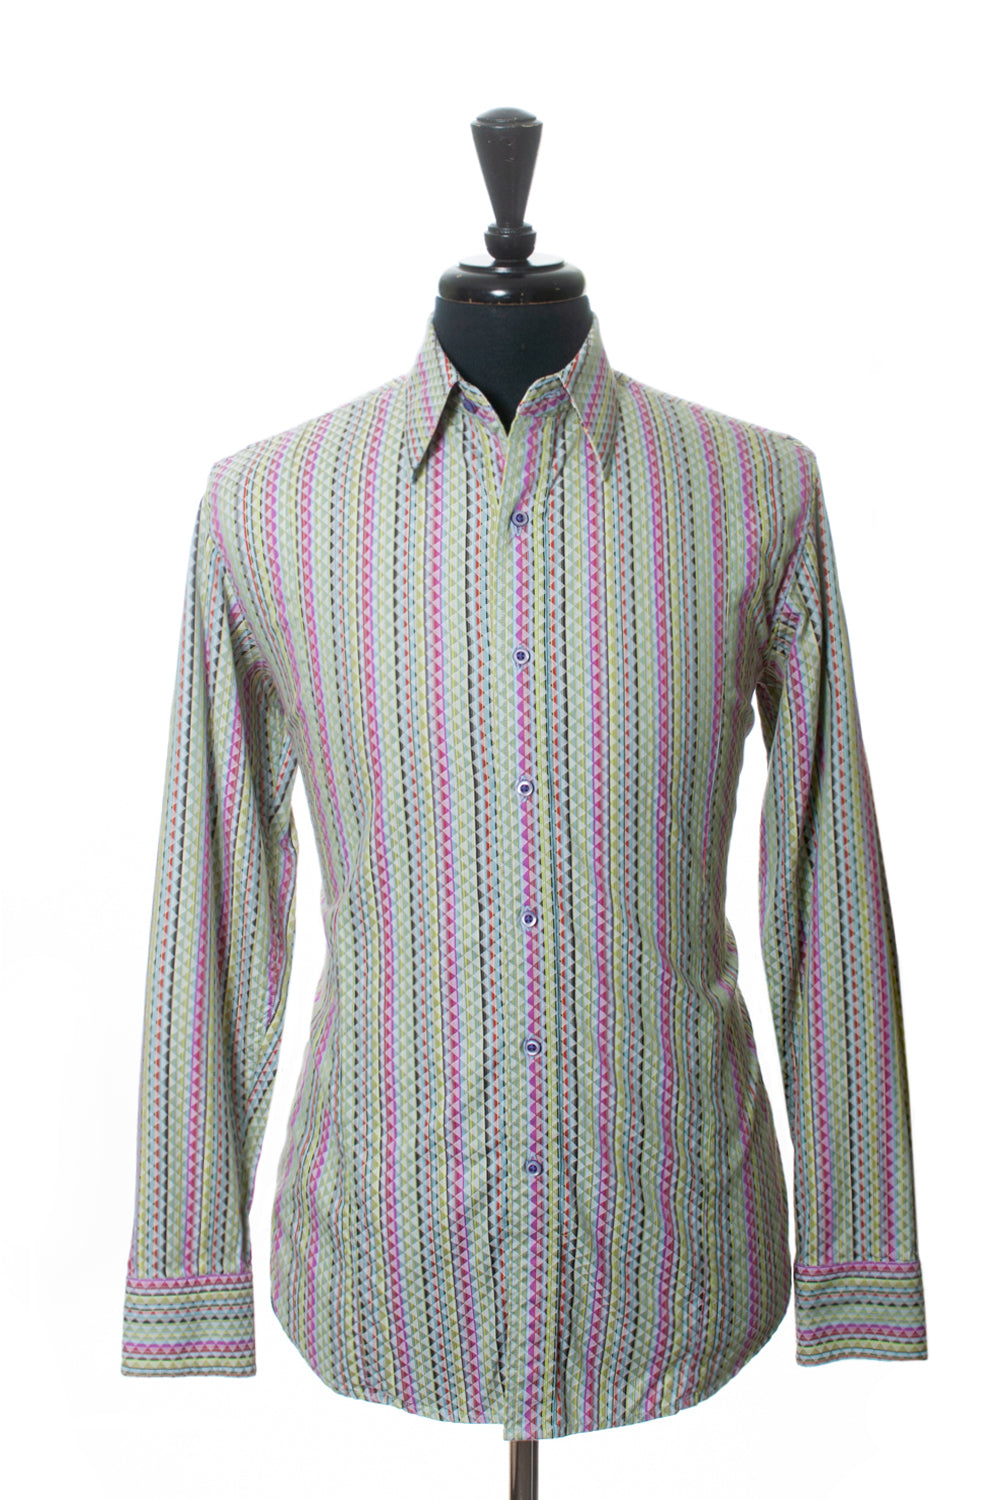 Alberto Black Stanley Techno Satin Modern Fit Pants for Luxmrkt.com Menswear Consignment Edmonton